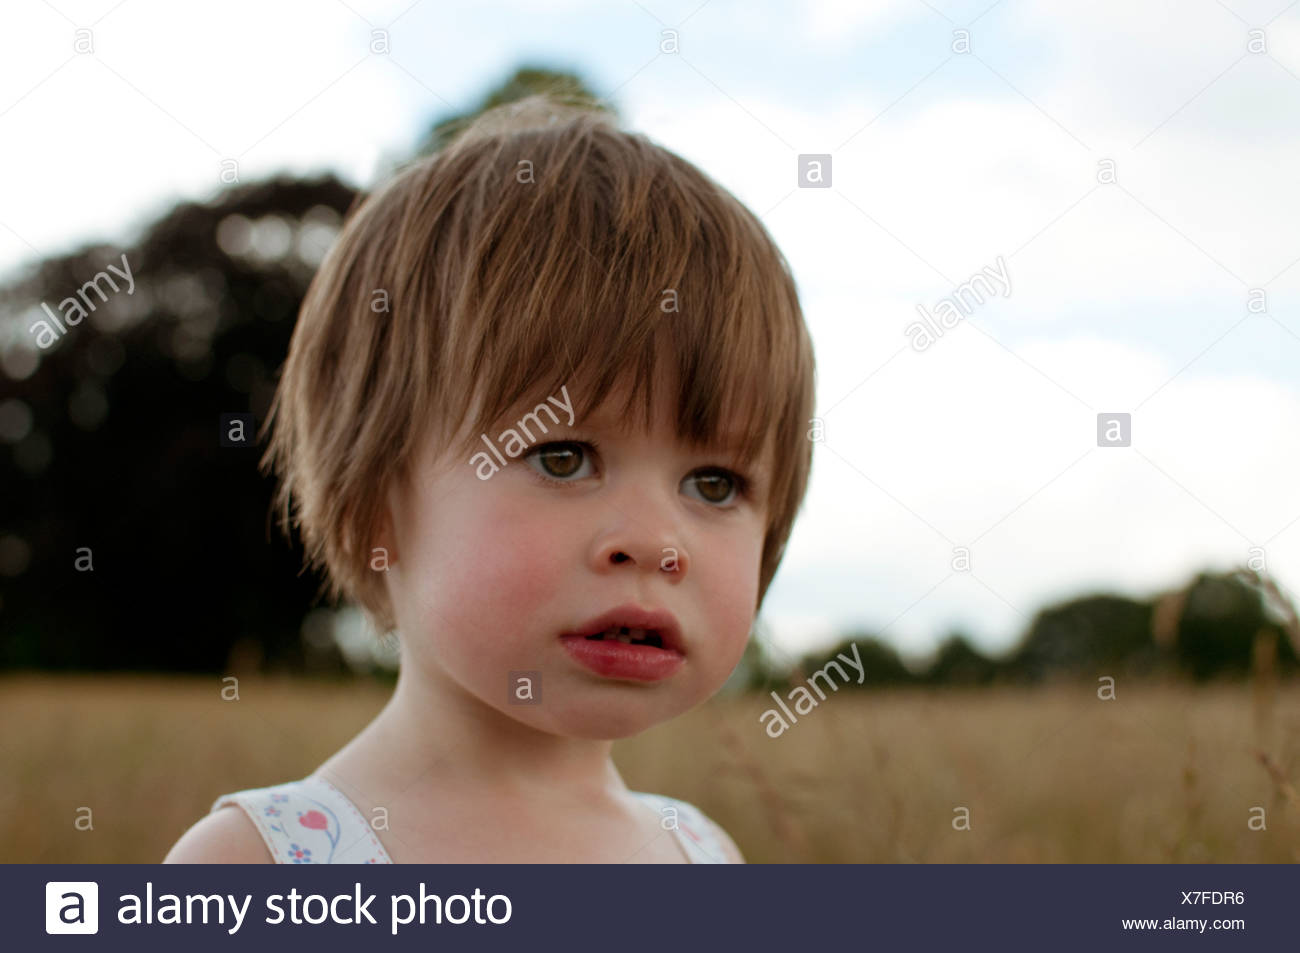 A portrait of a little girl outdoors - Stock Image